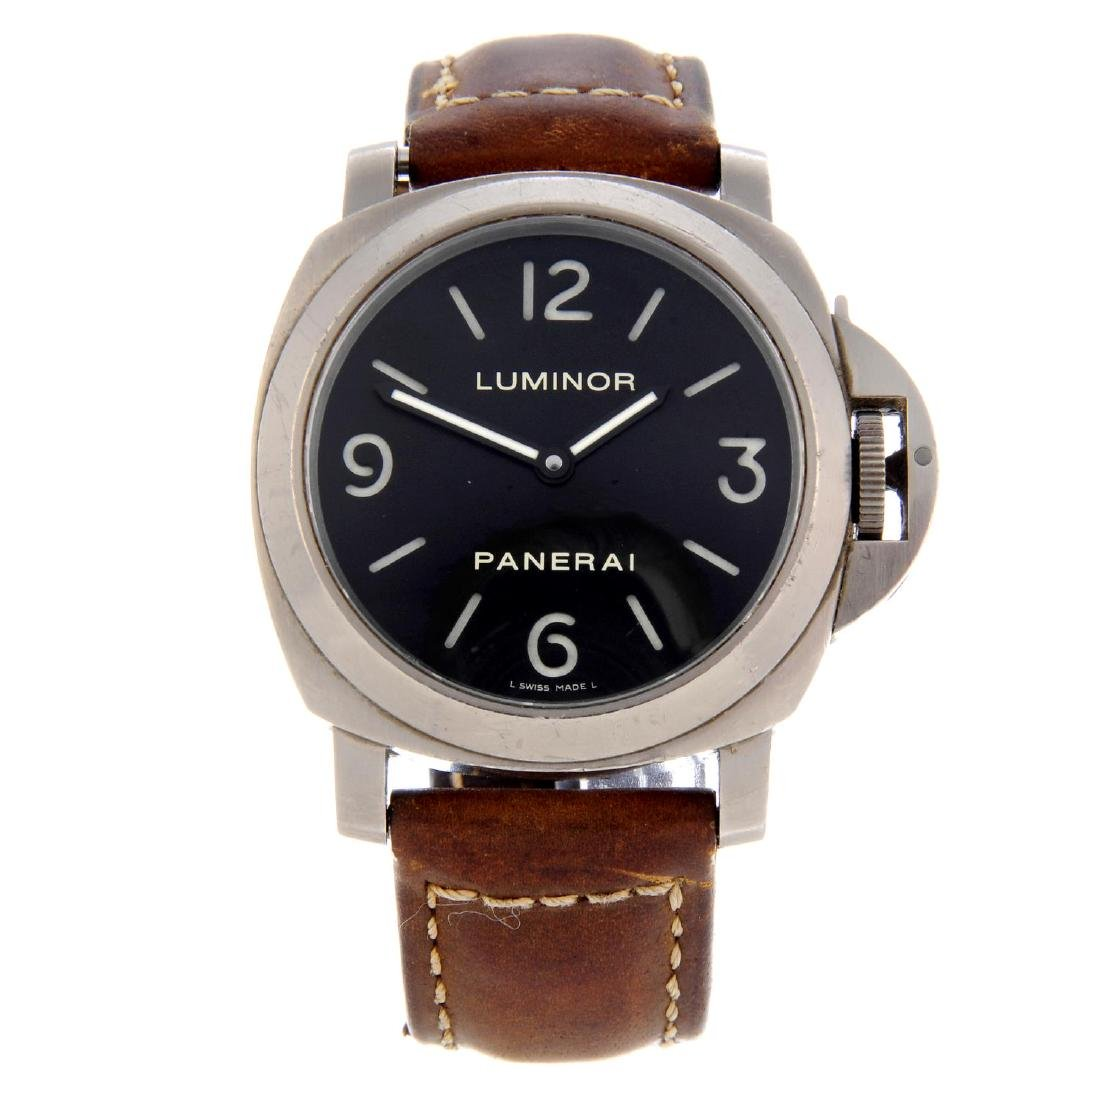 PANERAI - a gentleman's Luminor wrist watch. Circa